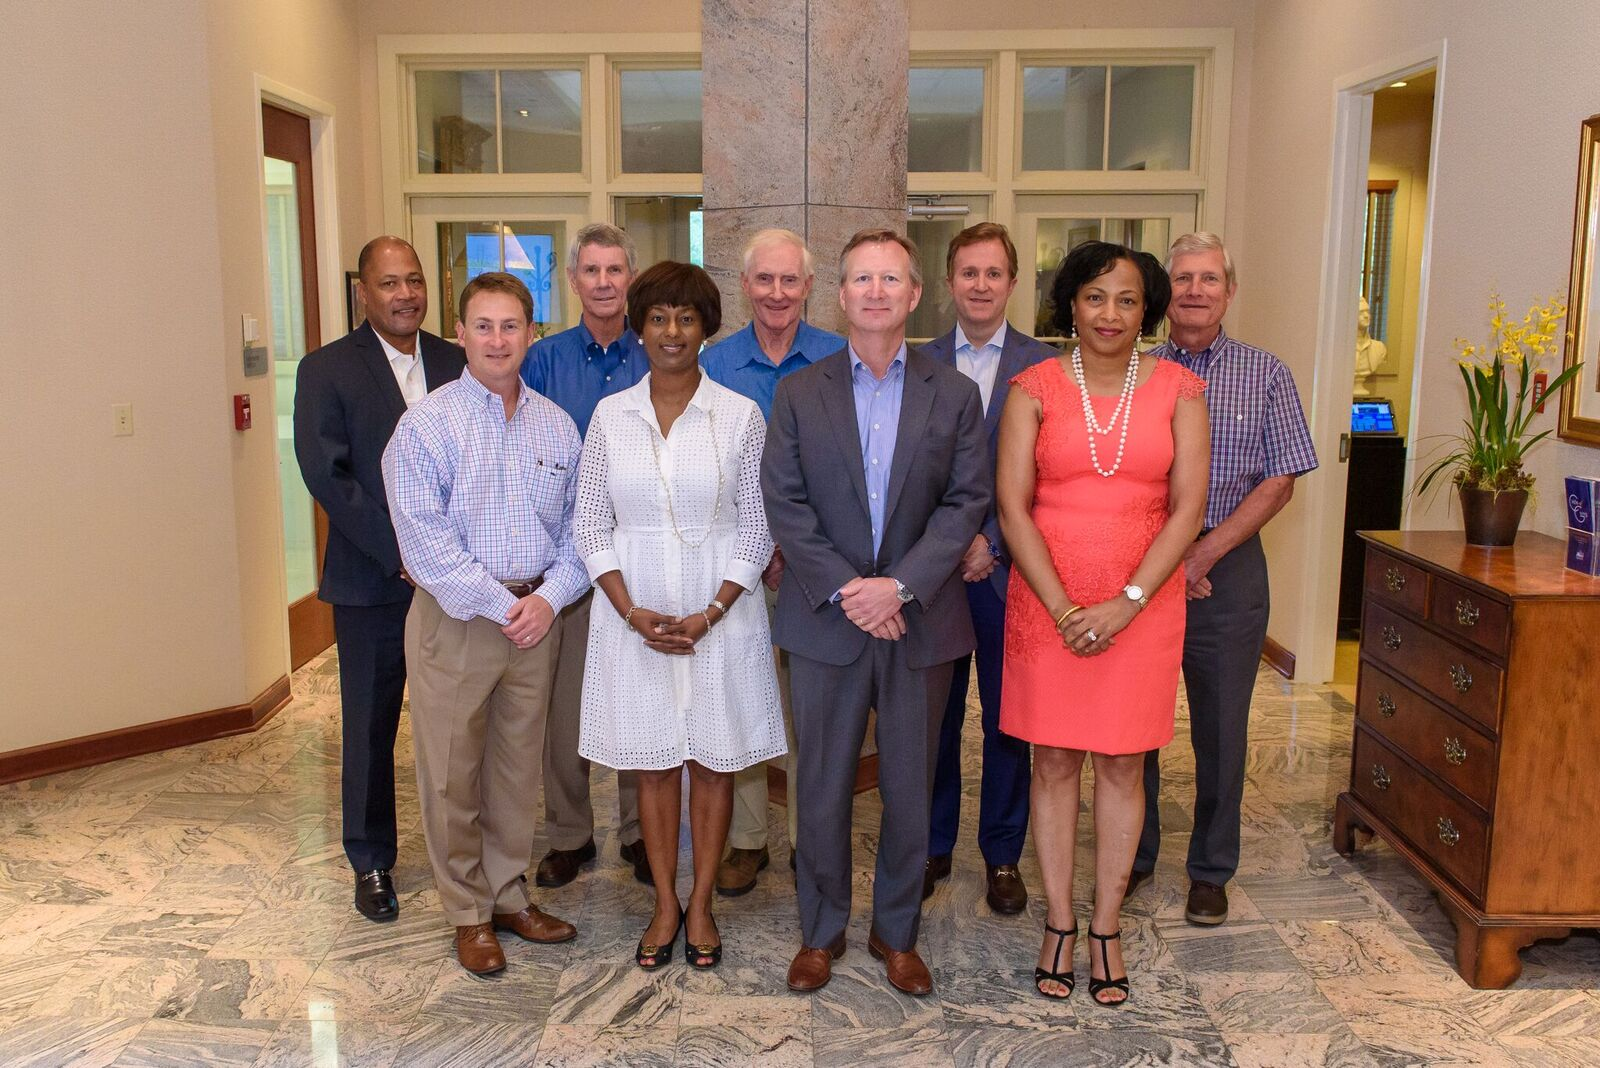 Woodward Hines Education Foundation Board of Directors